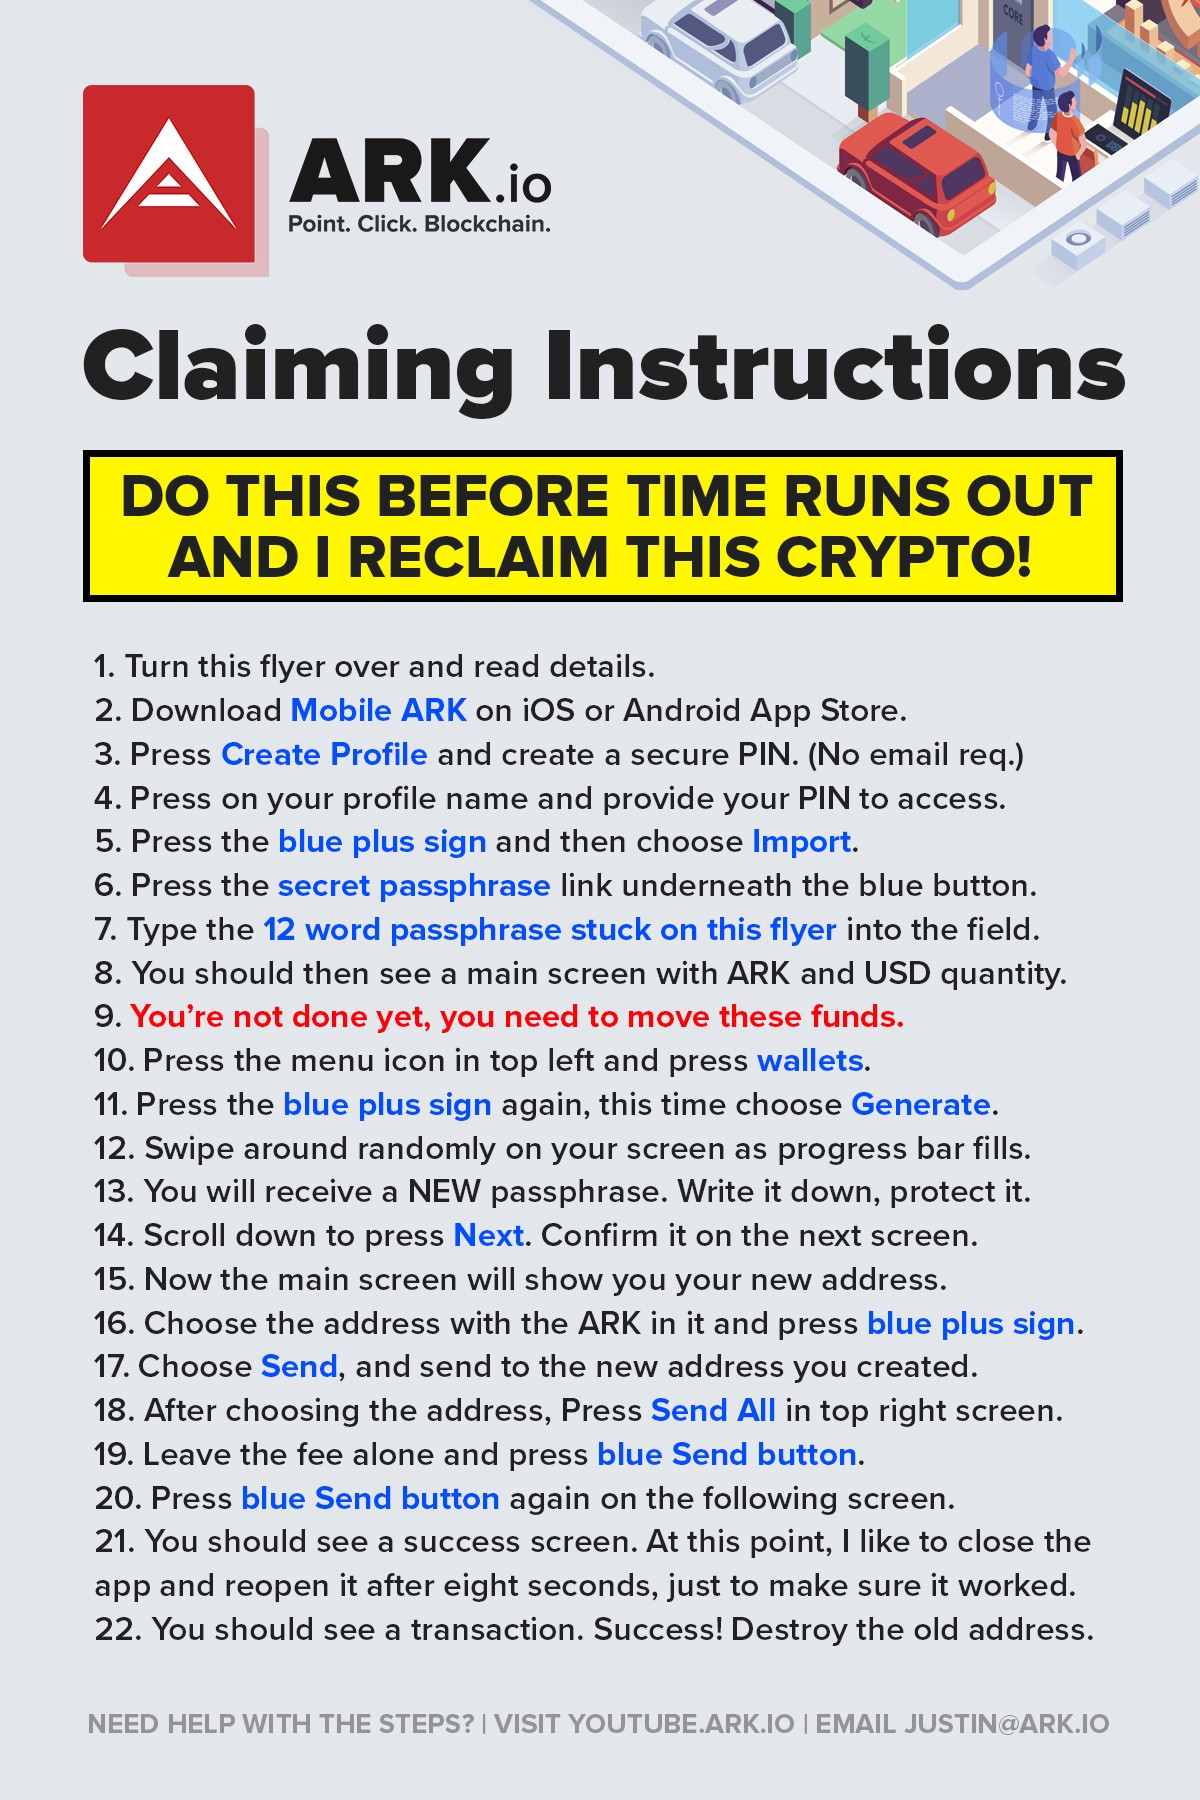 Flyer back design. No crypto is being offered to the reader of this article.